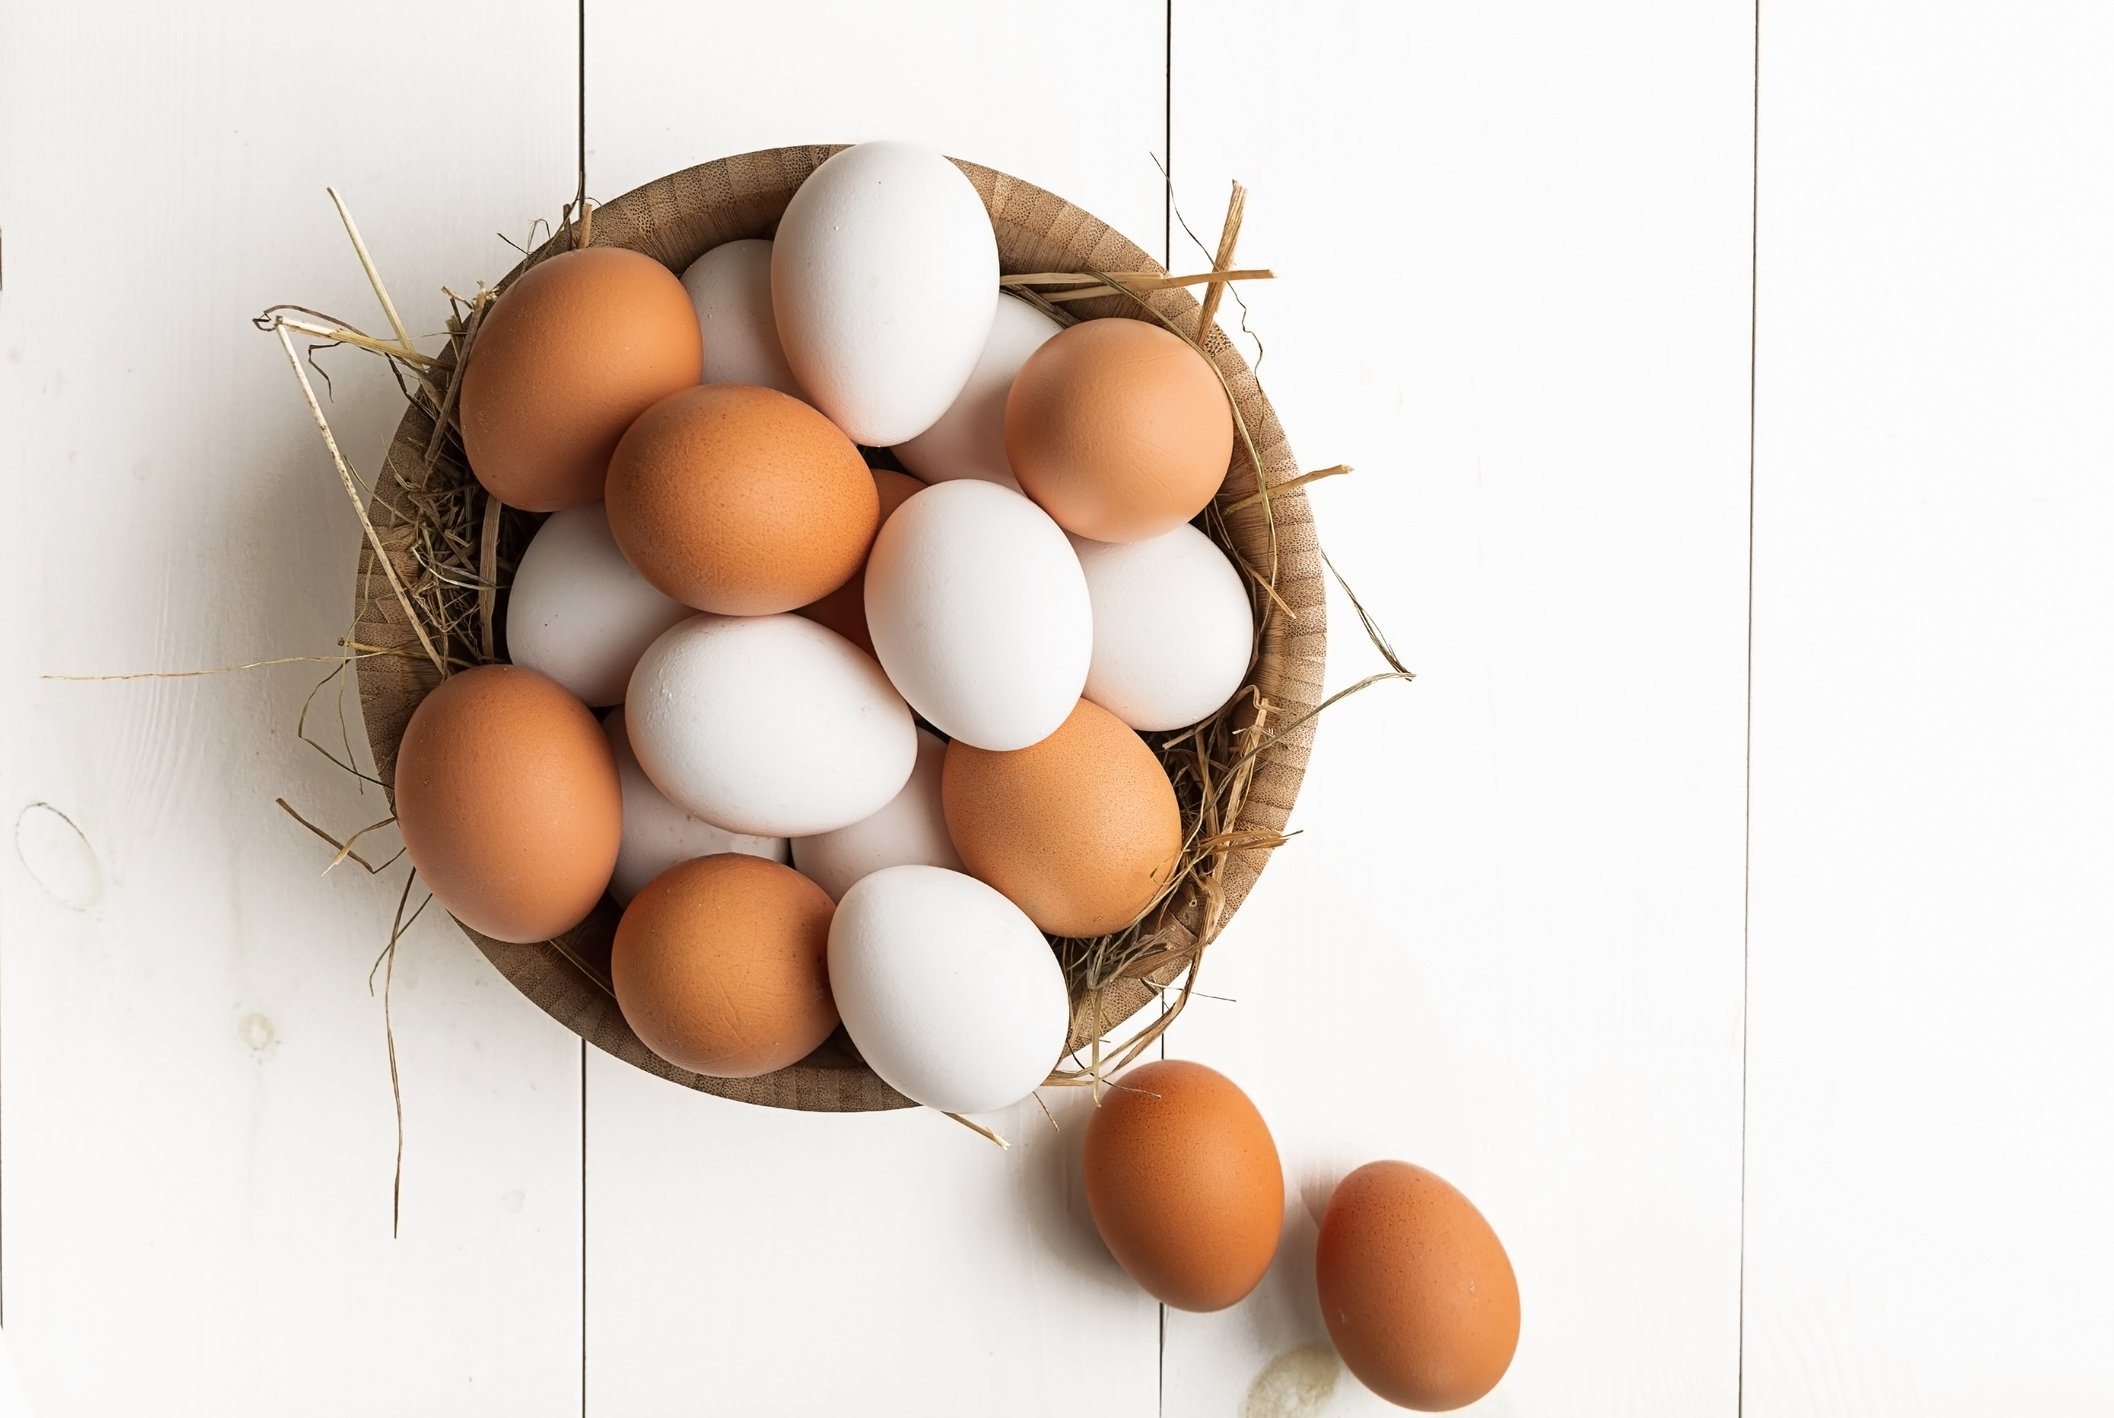 Eggs are one of the cheapest and easiest ways to get in some extra protein and tryptophan, which helps elevate the mood. (iStock Photo)